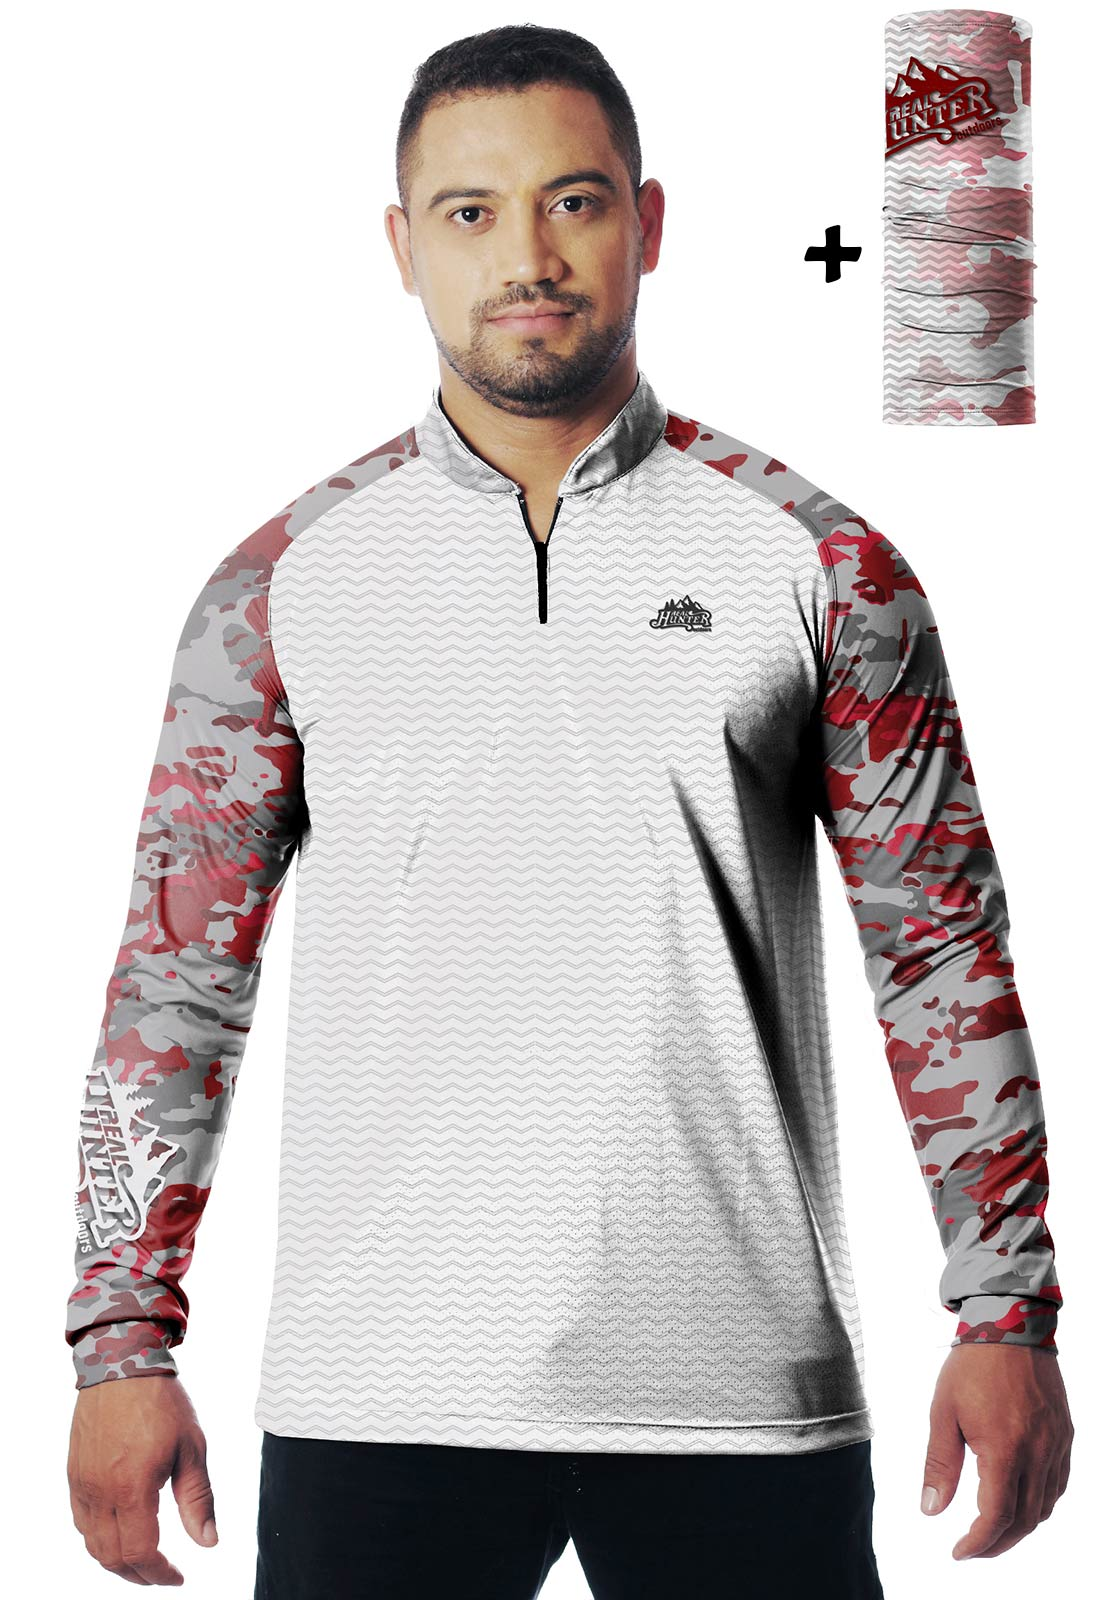 CAMISA DE PESCA FISH PRO 16 MASCULINA + BANDANA GRÁTIS  - REAL HUNTER OUTDOORS